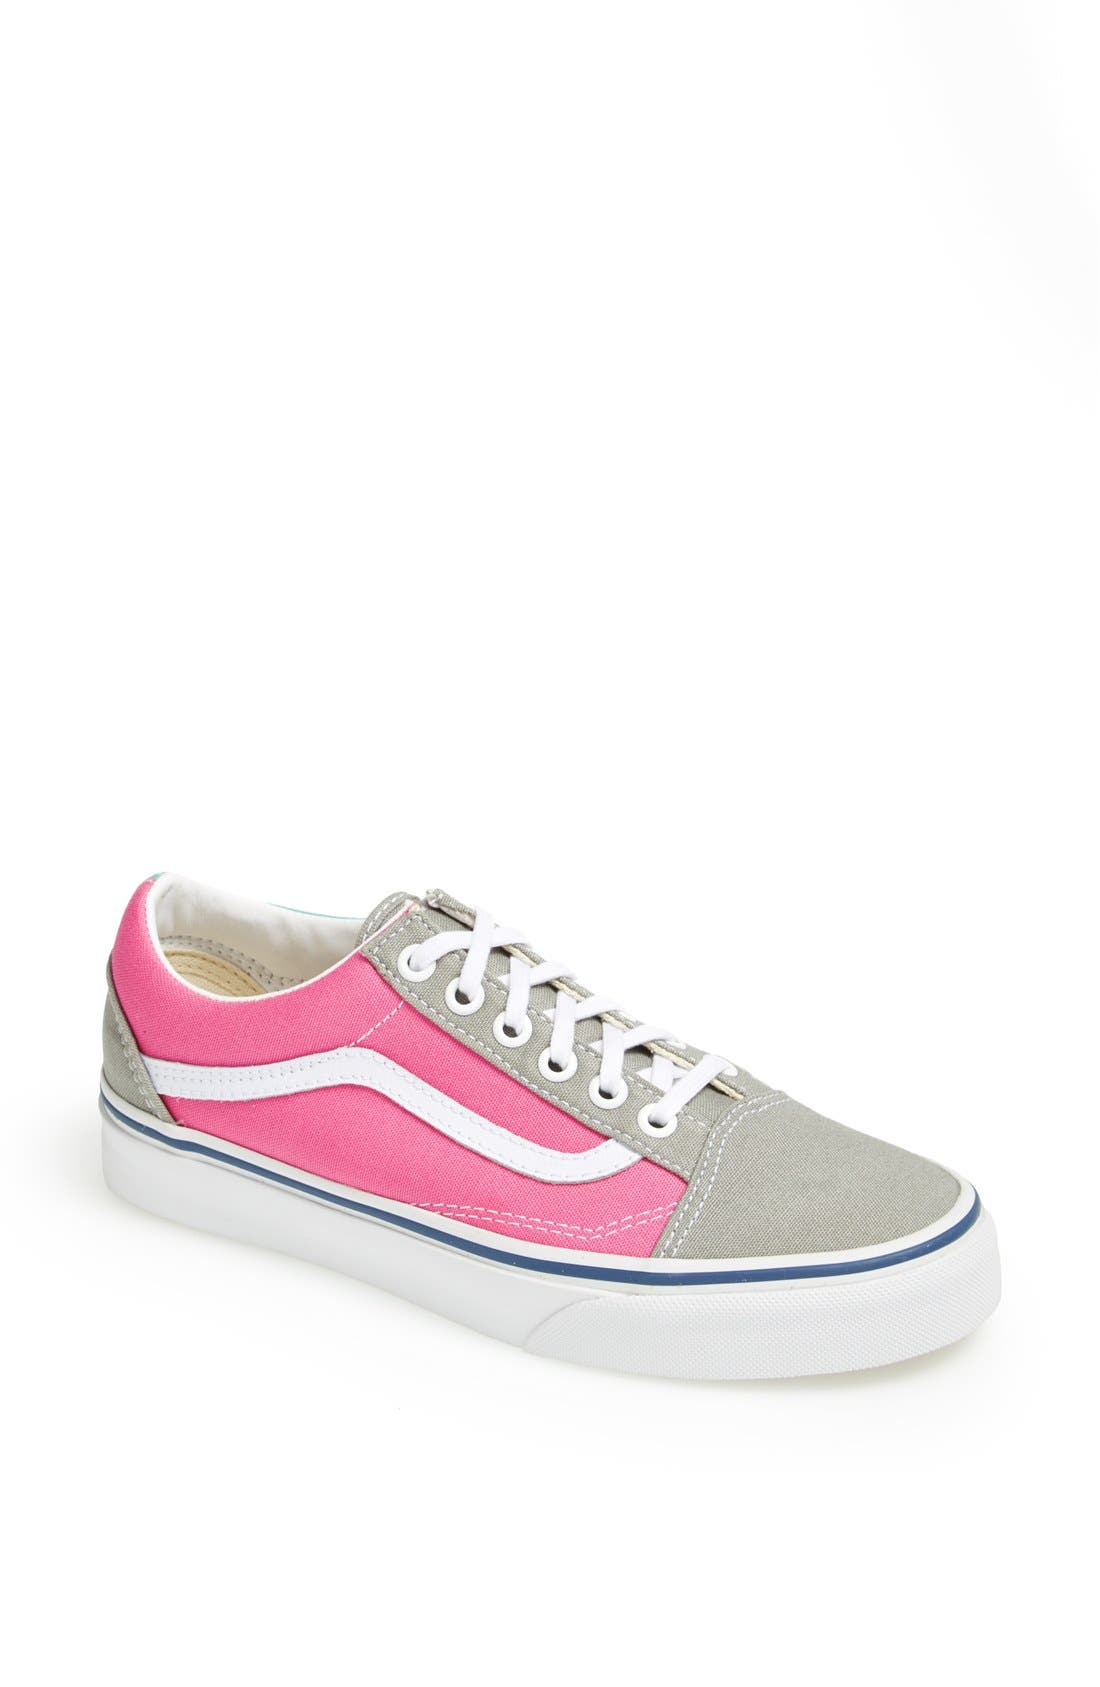 Main Image - Vans 'Old Skool' Sneaker (Women)